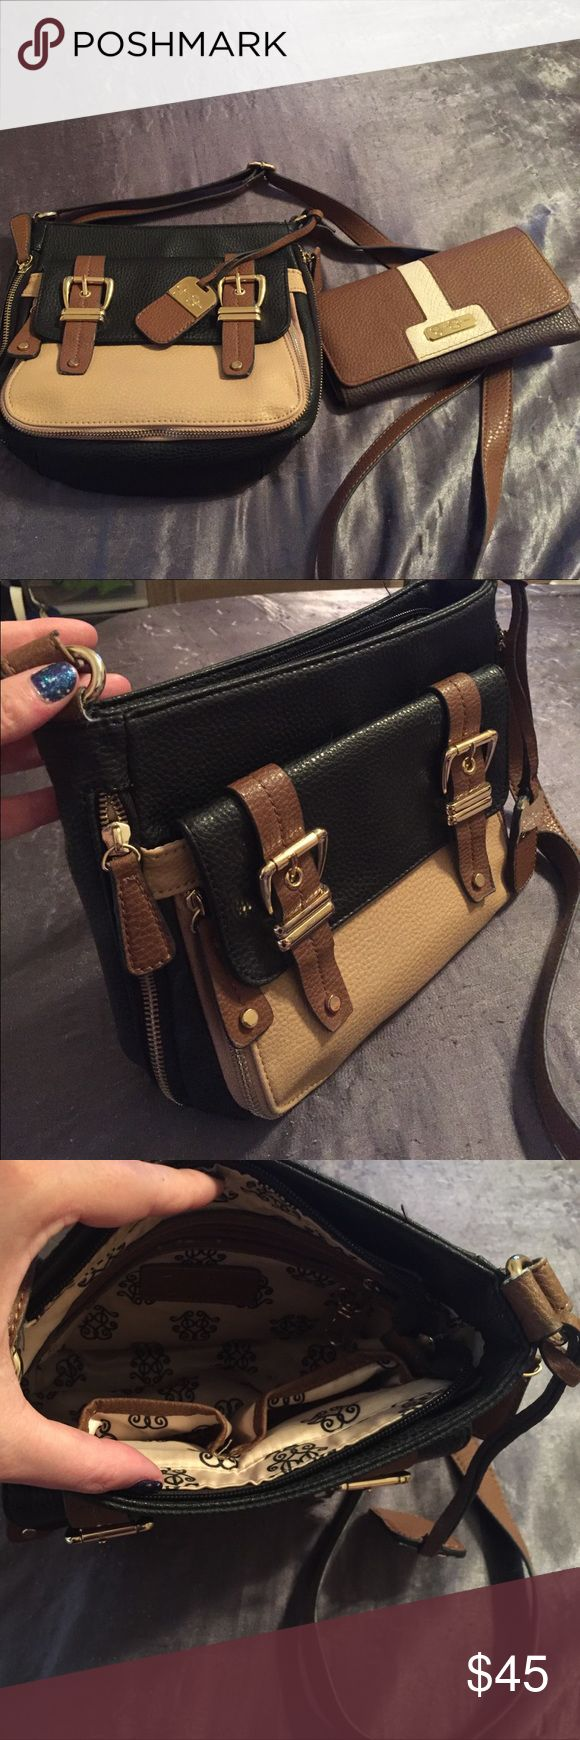 Jessica Simpson cross body and wallet Barely used wallet and cross body purse Bags Crossbody Bags